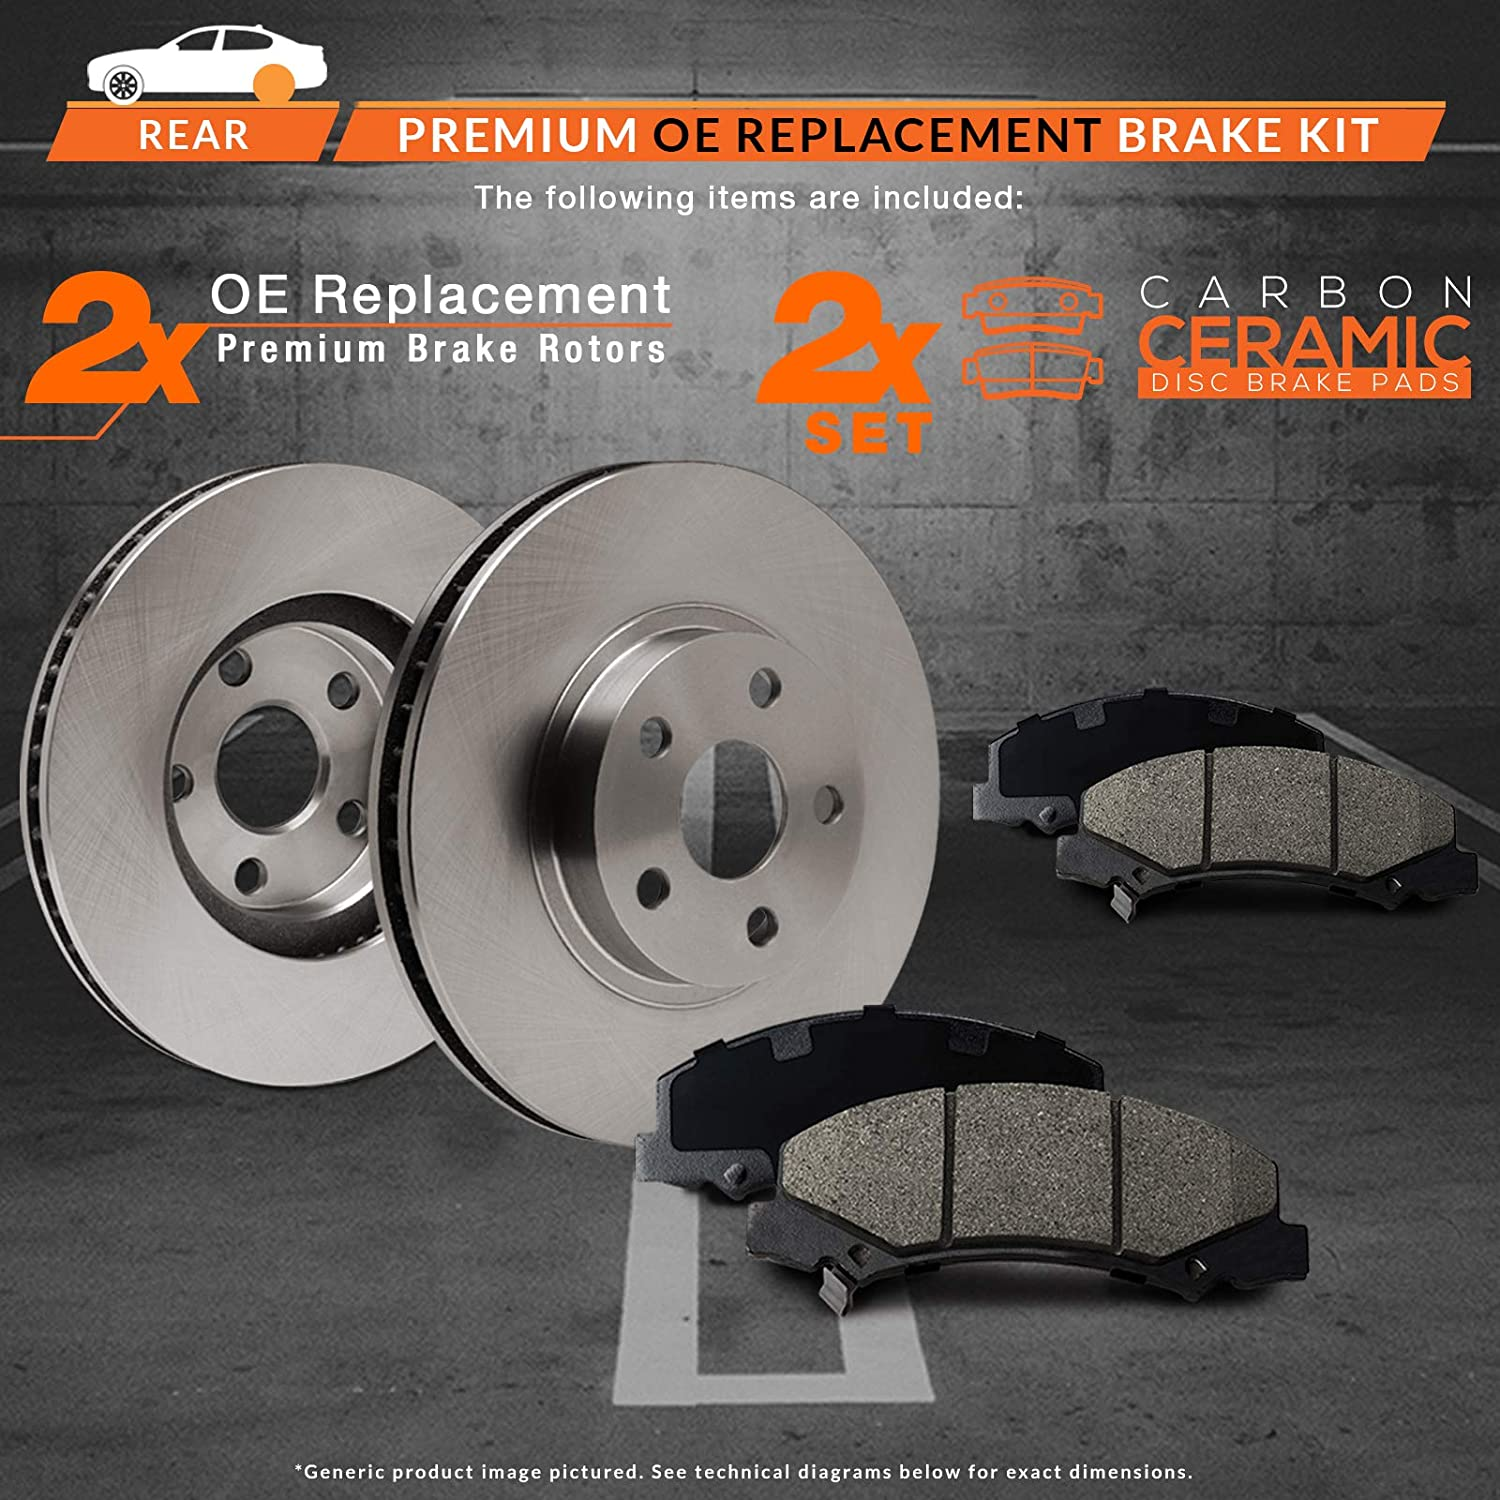 Fits: 2005 05 2006 06 2007 07 2008 08 2009 09 Pontiac G6 Max Brakes Rear Premium Brake Kit KT022342 OE Series Rotors + Ceramic Pads